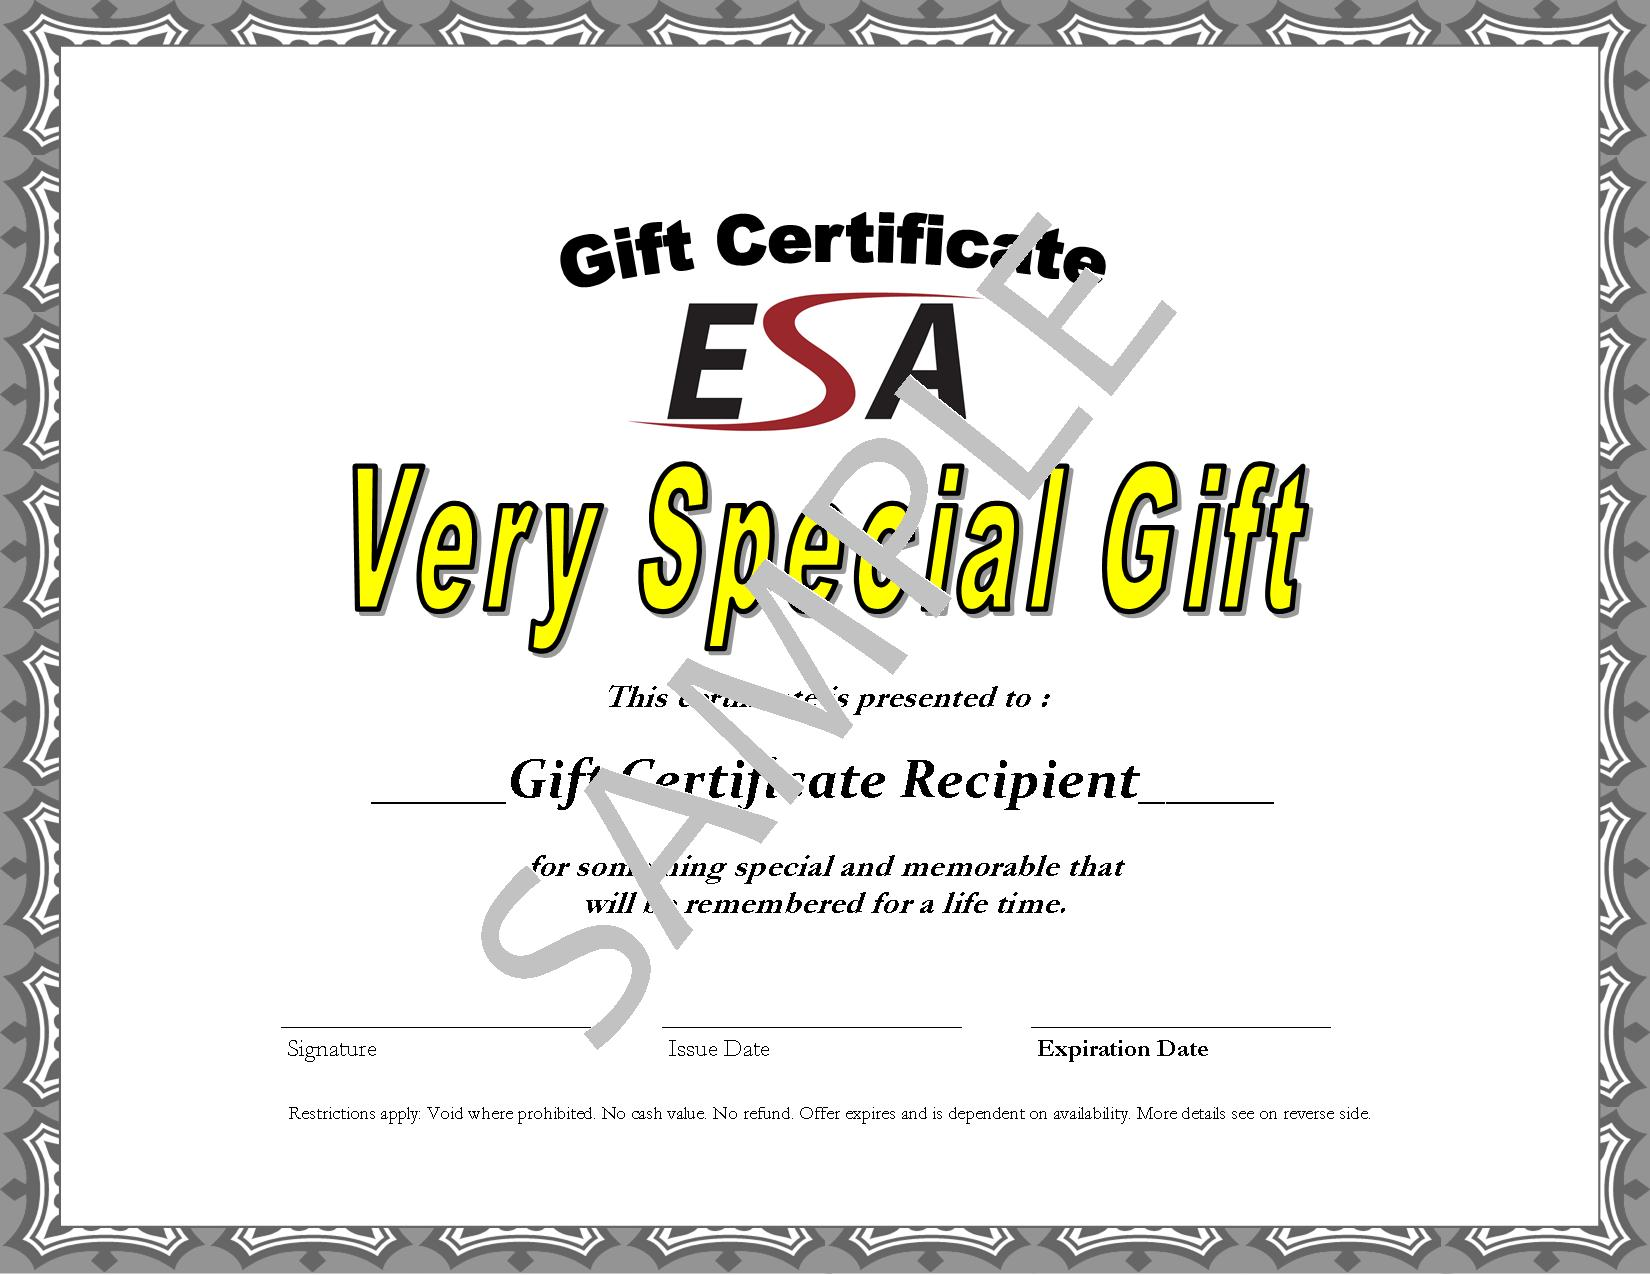 Buy ESA Gift Cards now